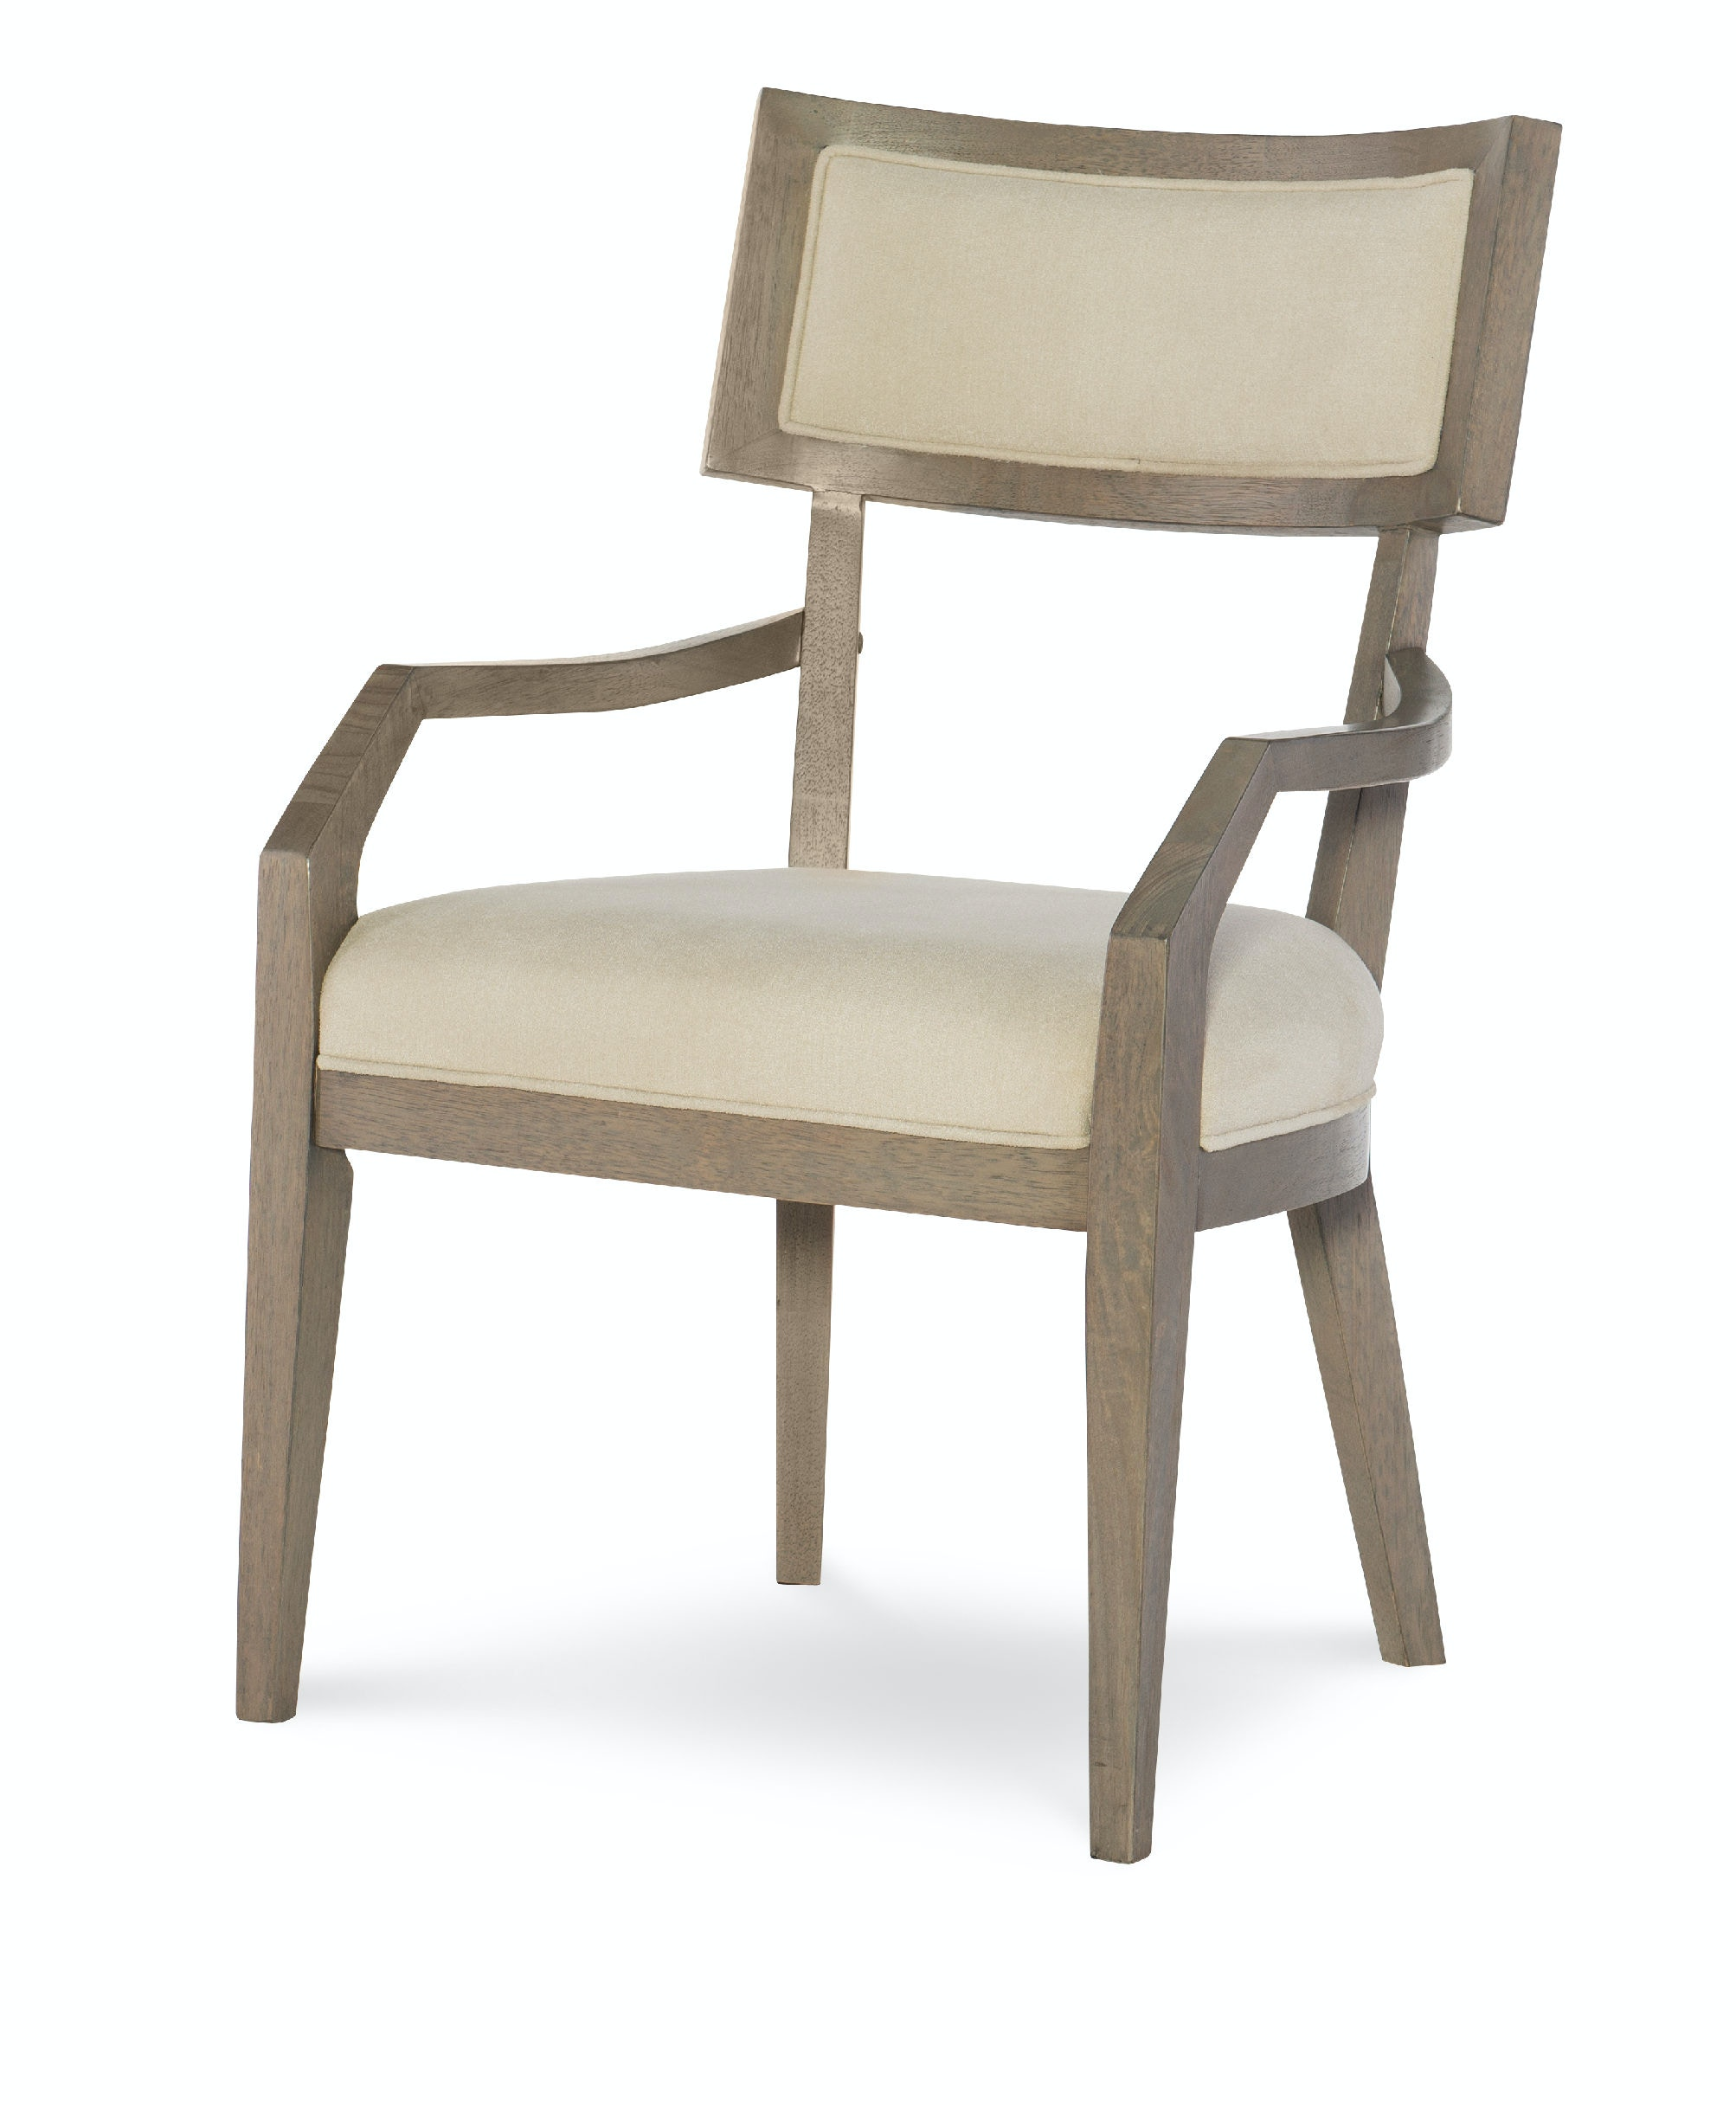 Rachael Ray Home By Legacy Classic Furniture Klismo Arm Chair 6000 341 KD